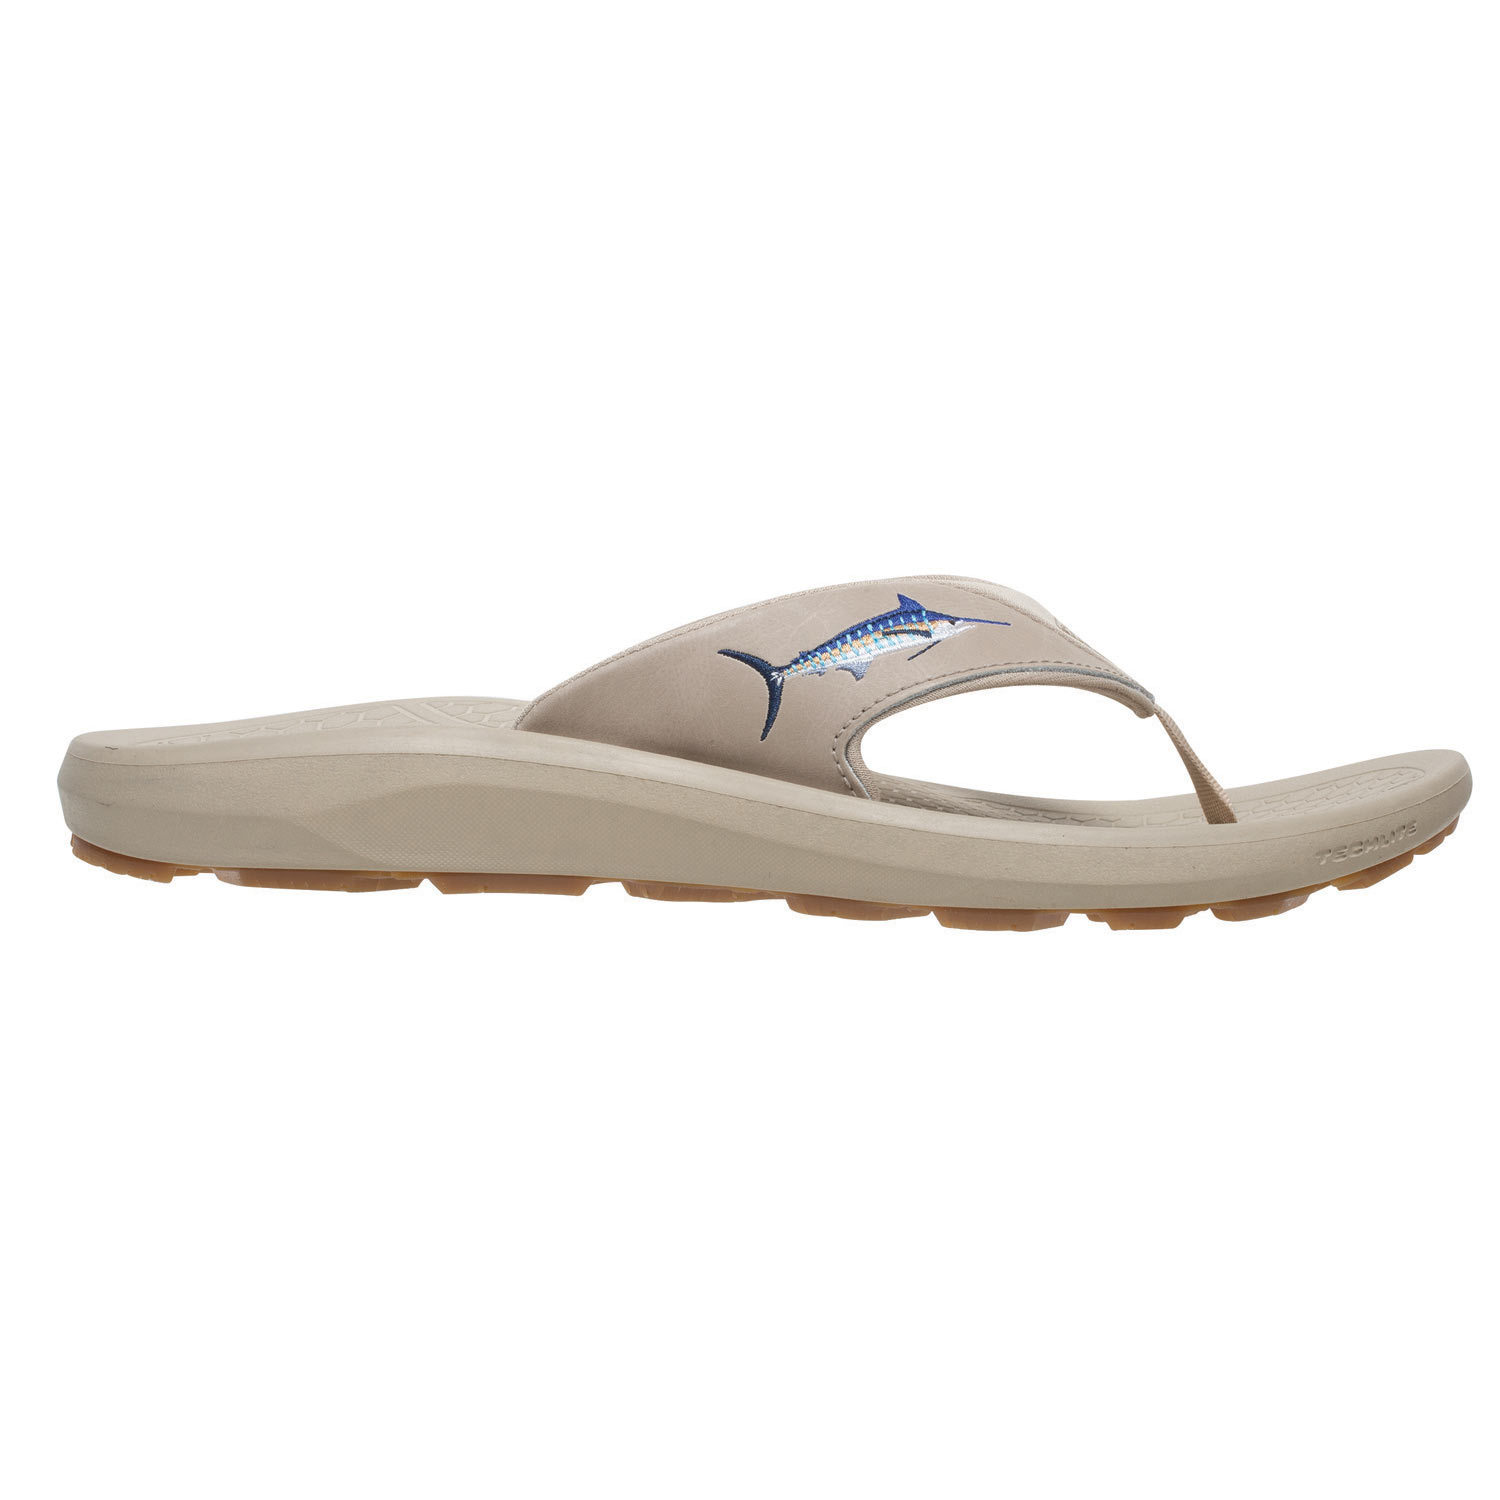 Columbia Mens Fish Flip Pfg Flop Sandals West Marine Flops And Not The Sandy Beach Kind Design Technology Enlarged View Of Picture Opens Dialog